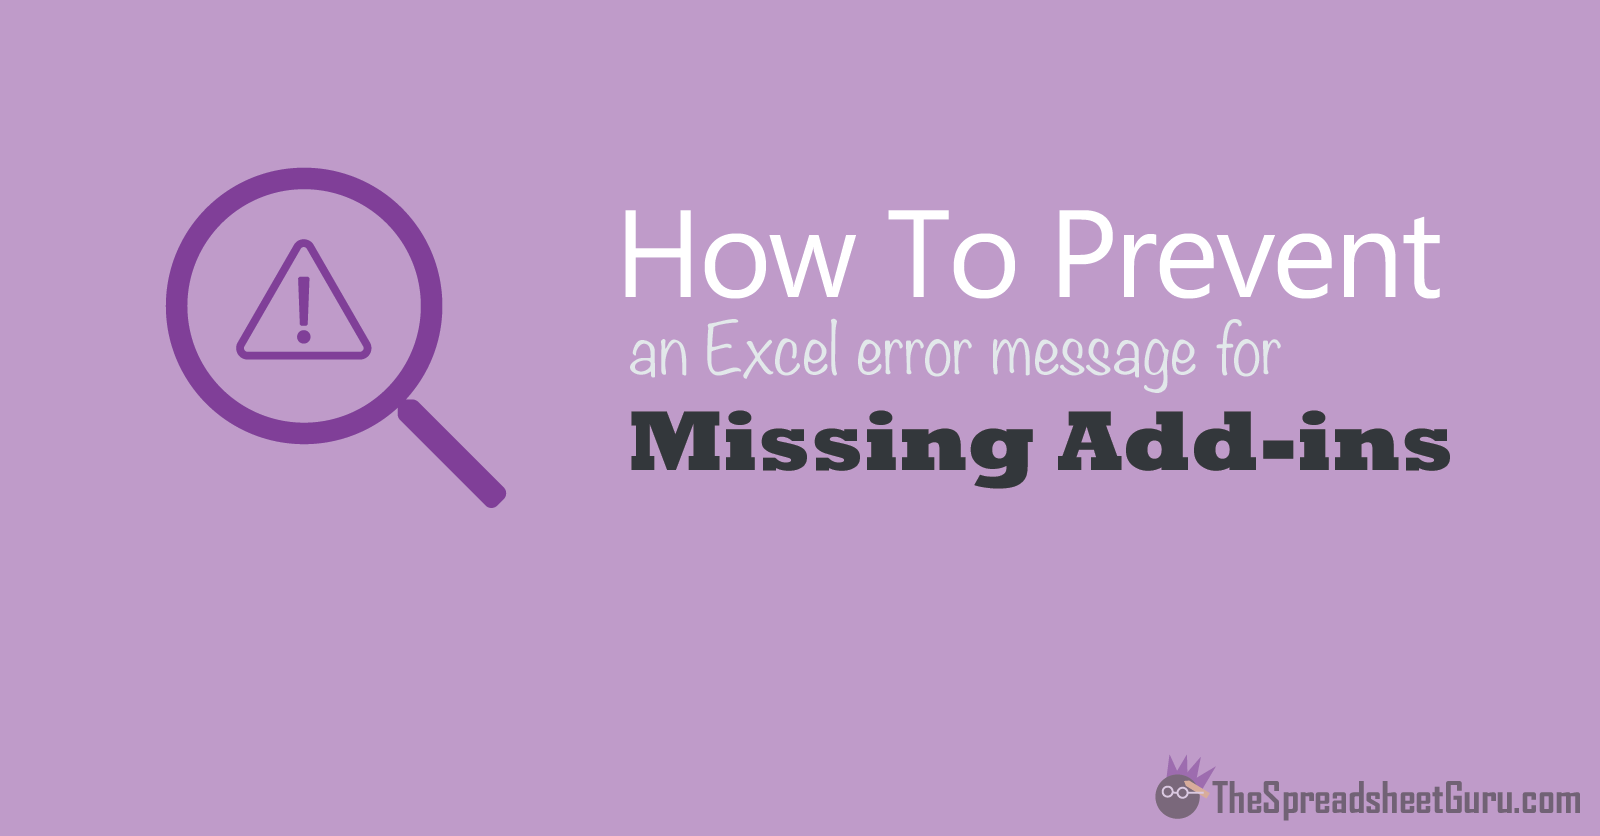 How To Prevent The Excel Error Message For A Missing Add-in